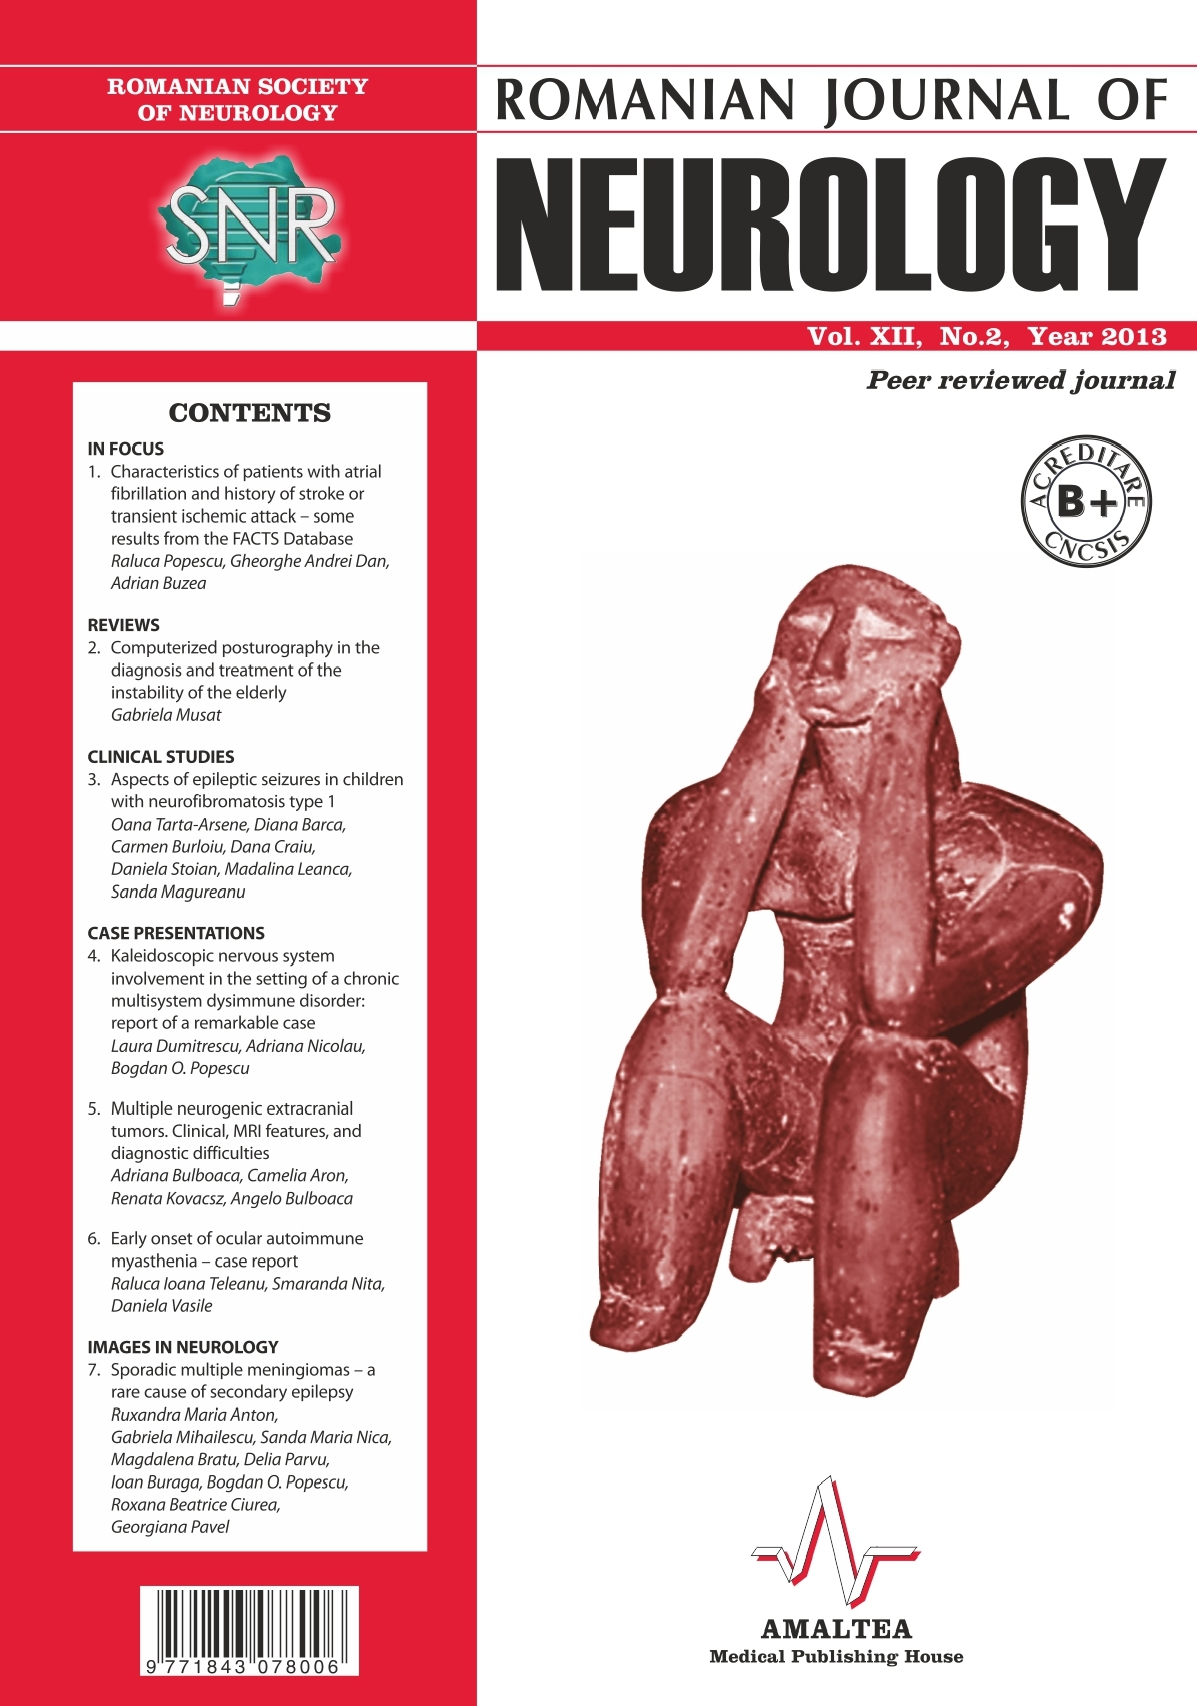 Romanian Journal of Neurology, Volume XII, No. 2, 2013